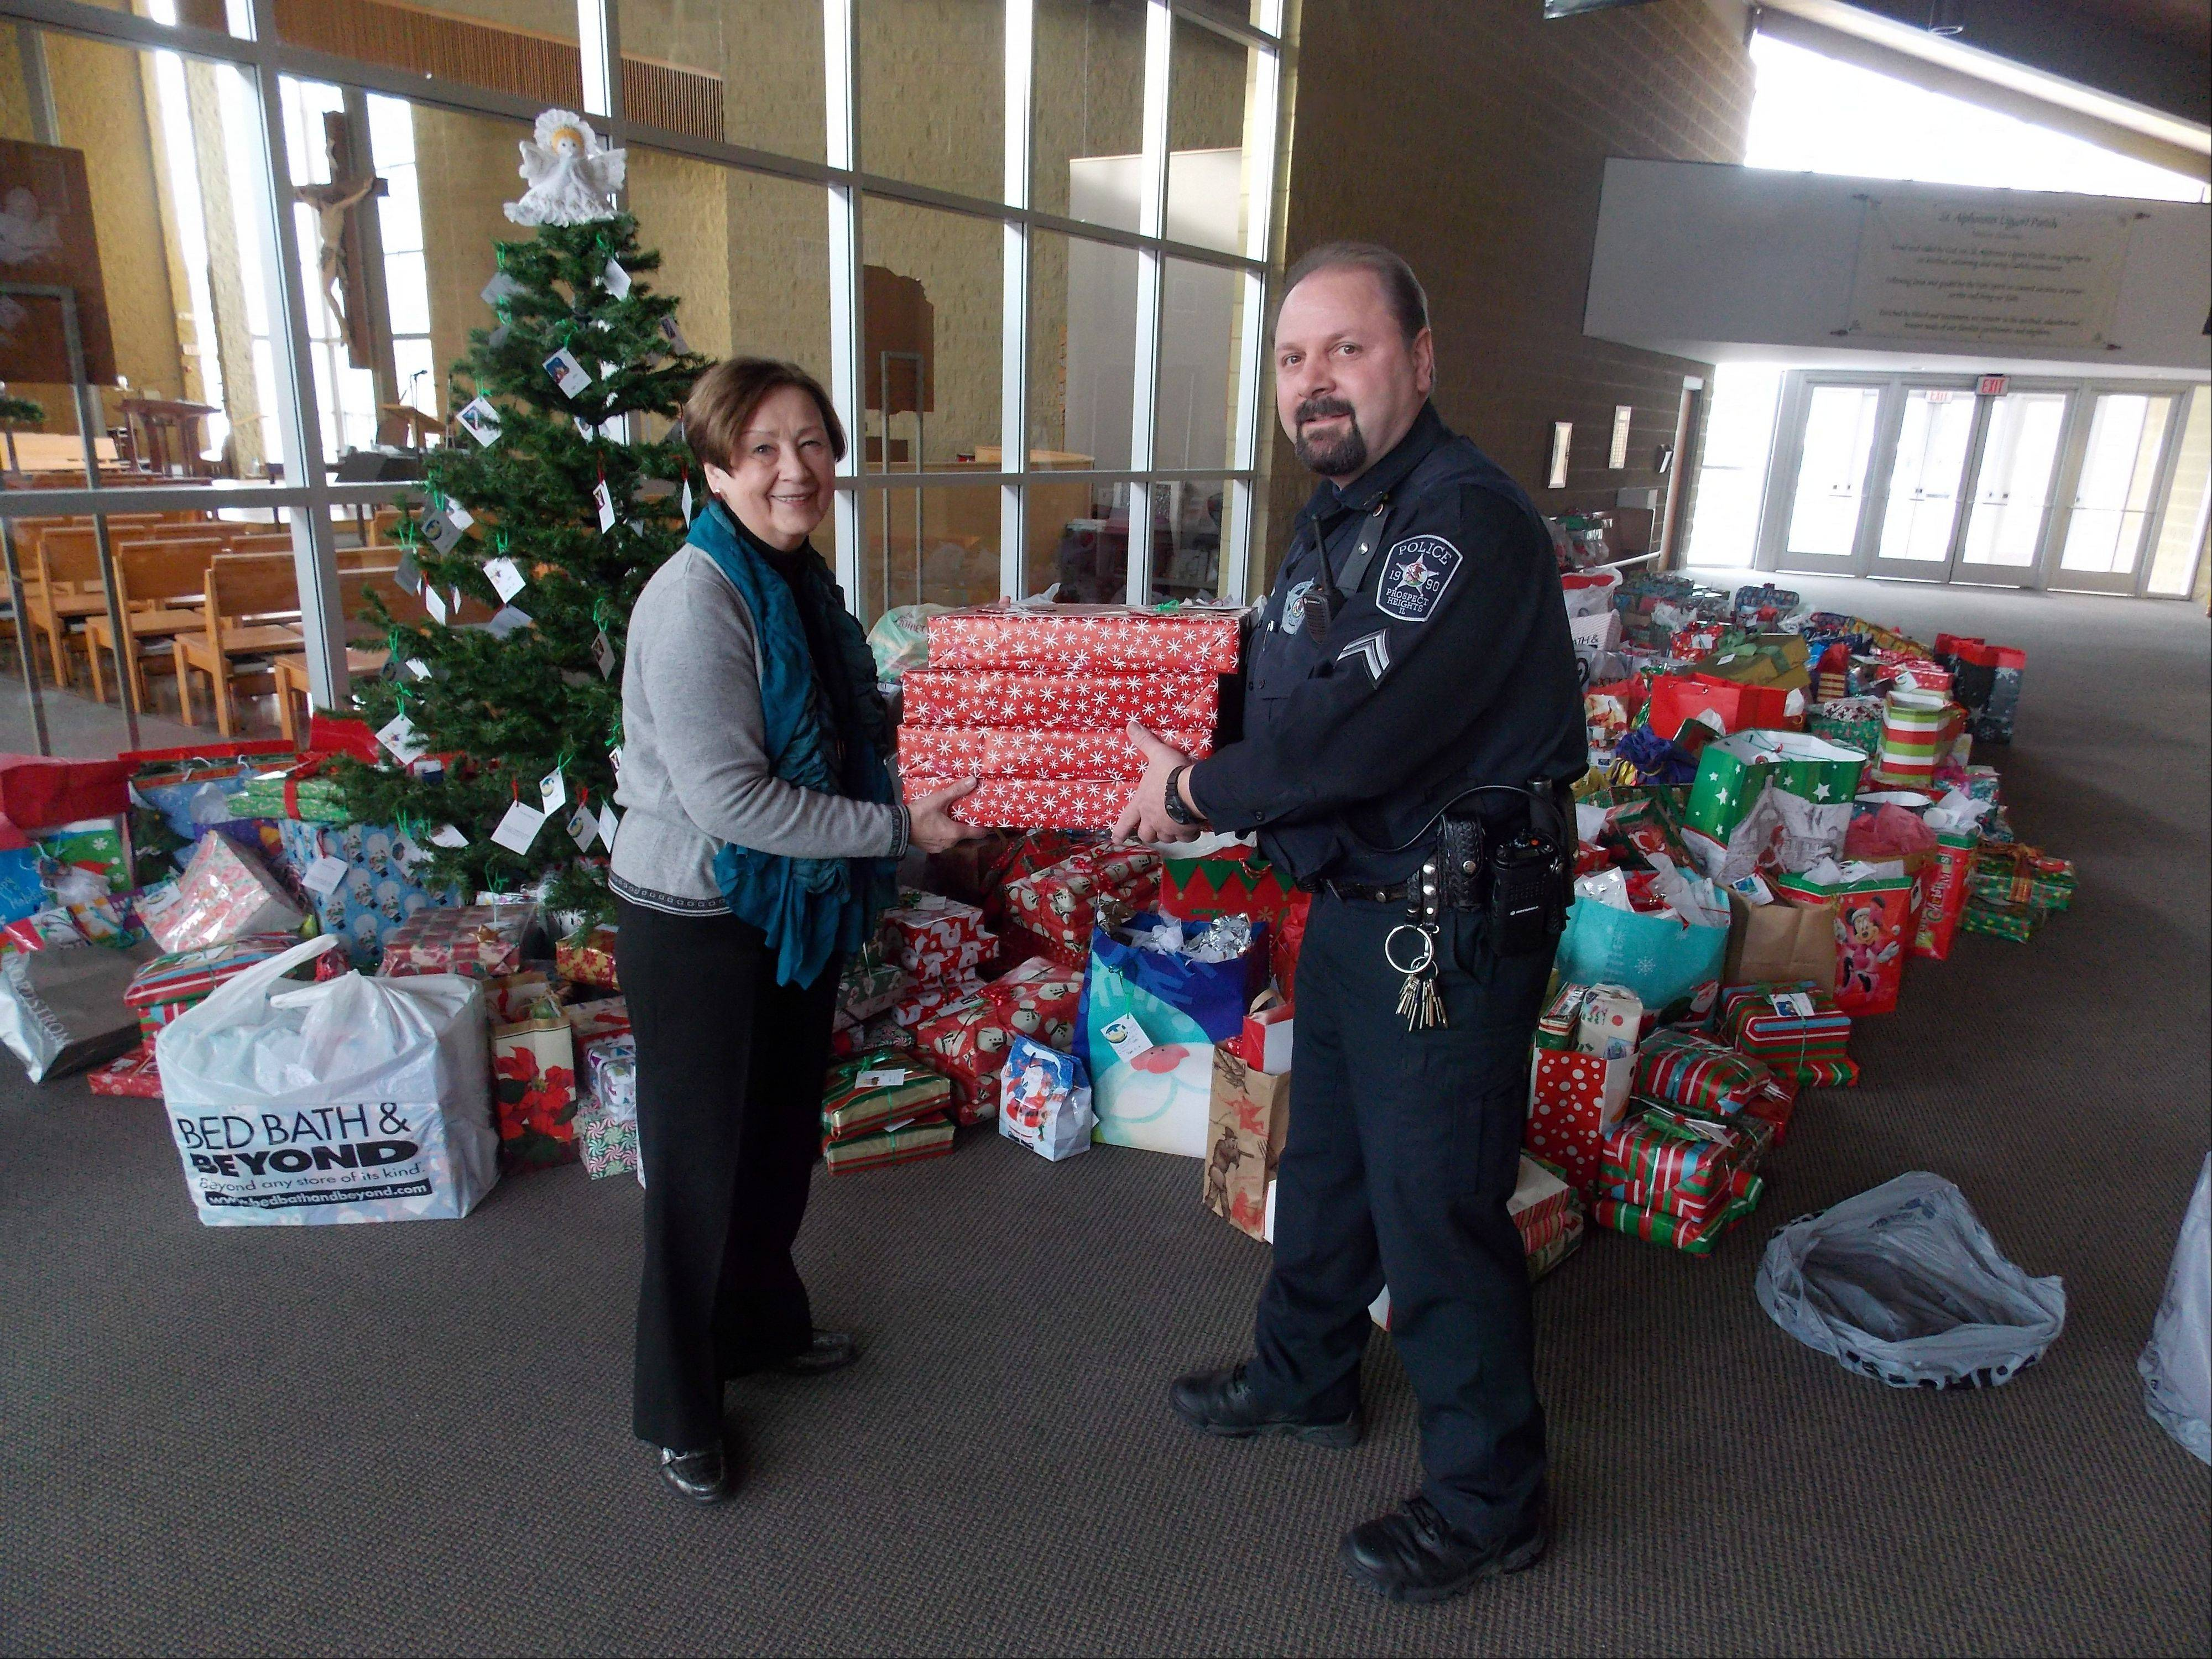 Prospect Heights police Cpl. Scott Minniear and Andrea Ricard of St. Alphonsus Ligouri Parish with gifts donated to the 2013 Giving Tree.